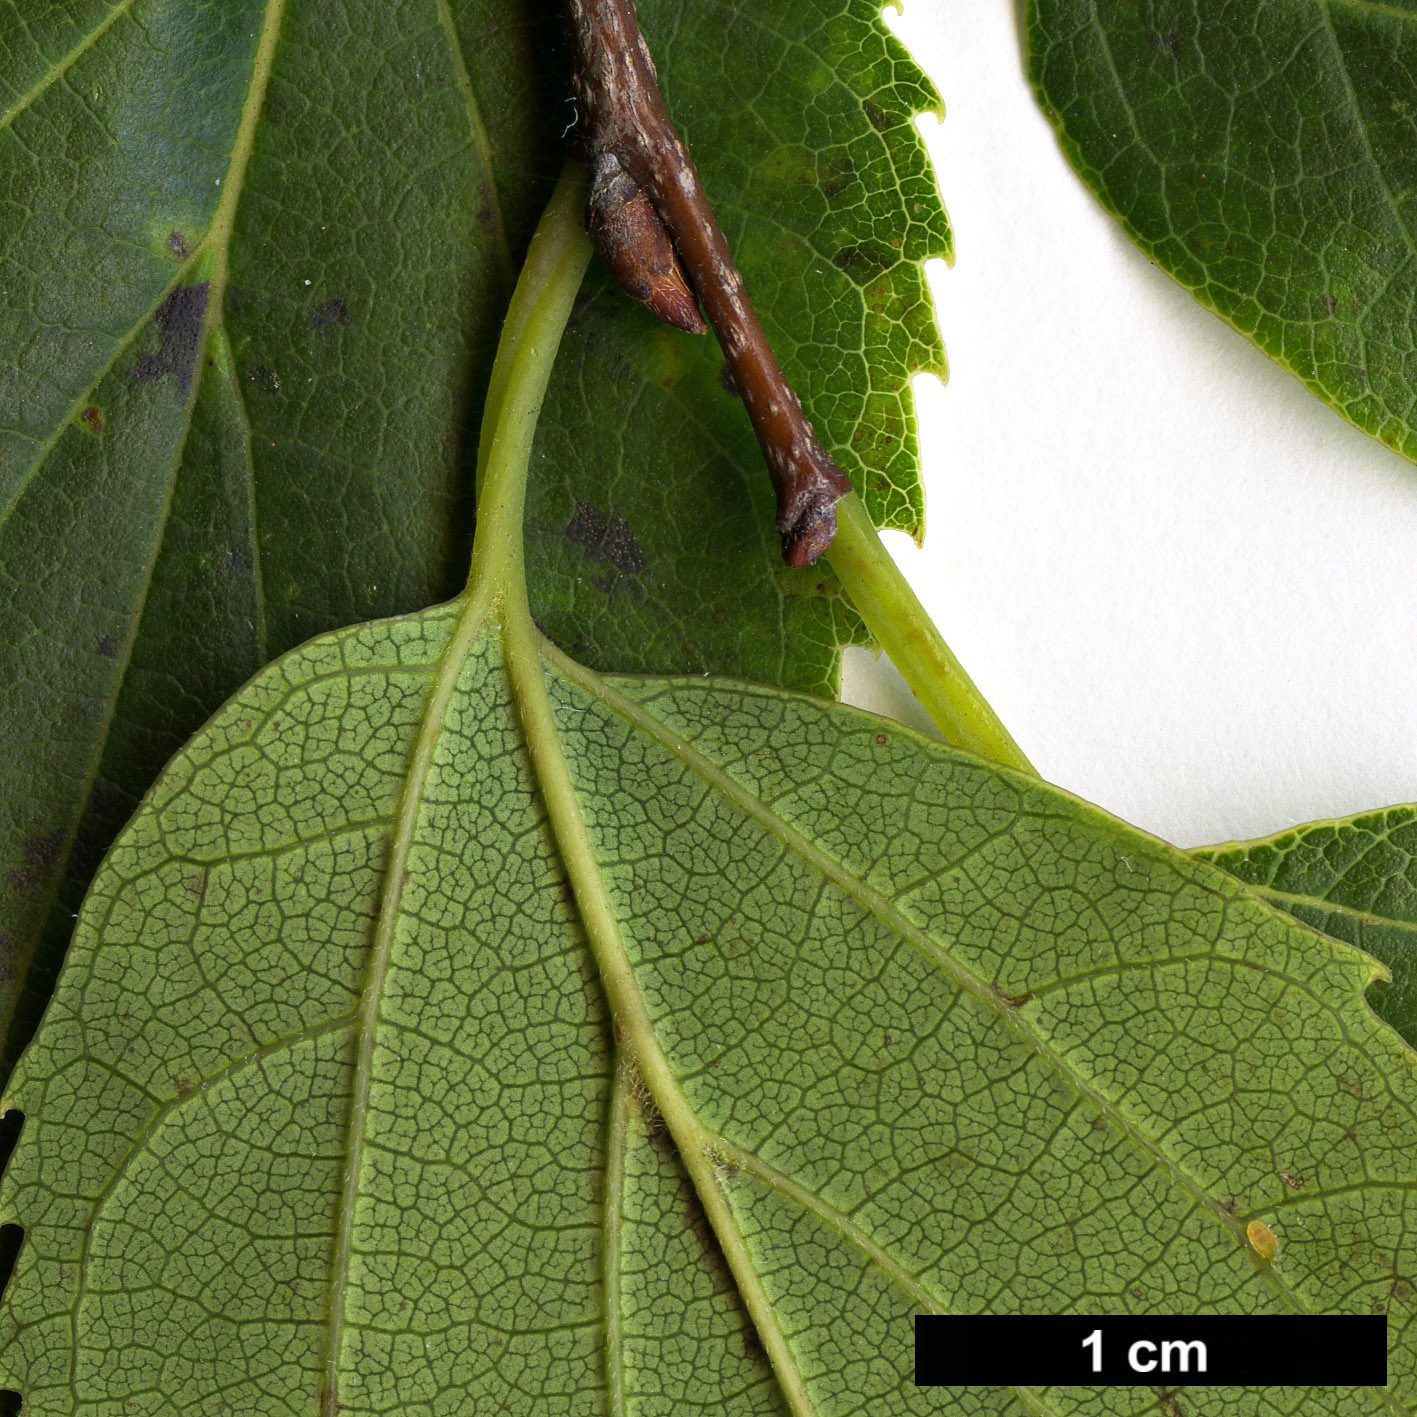 High resolution image: Family: Cannabaceae - Genus: Celtis - Taxon: choseniana